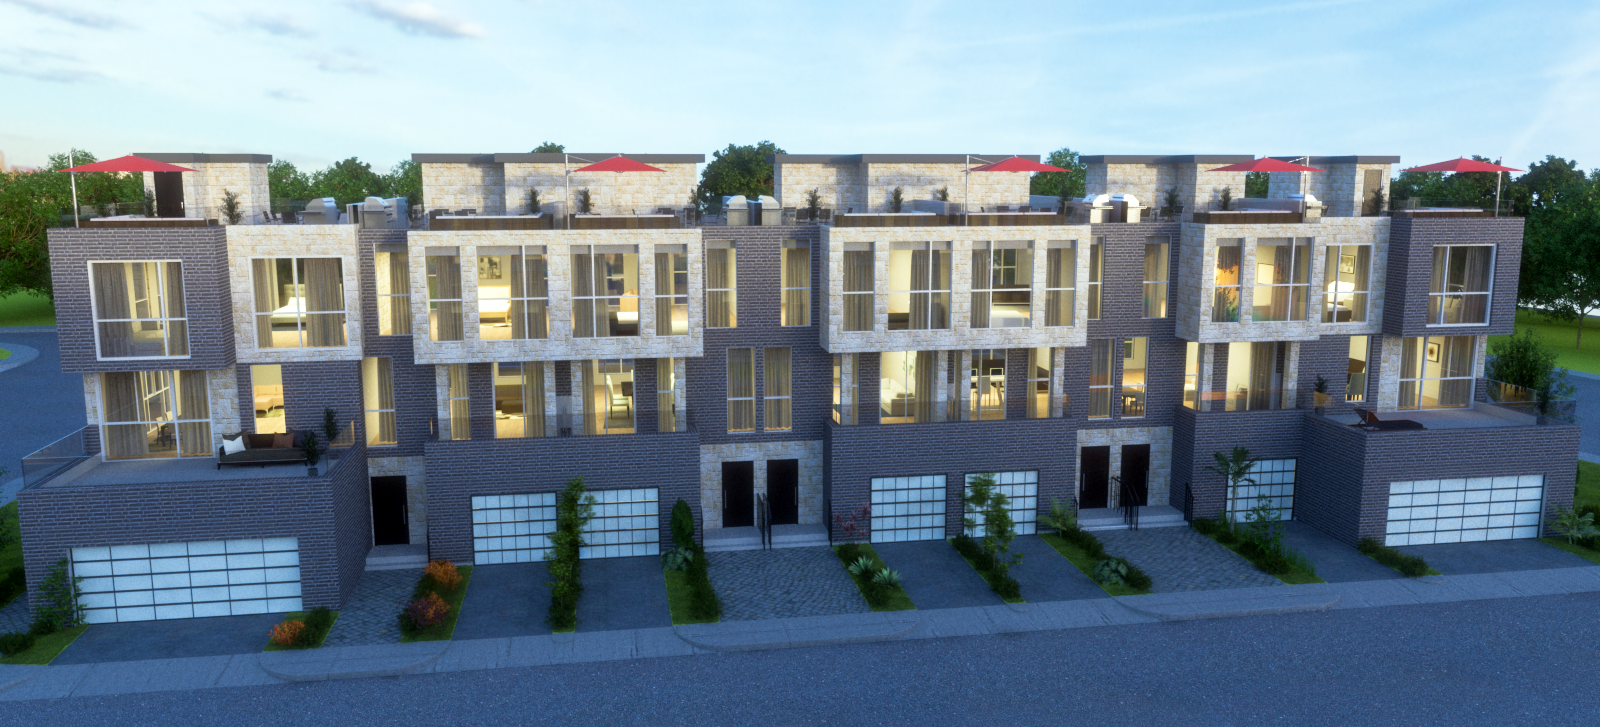 townhouse exterior at night time - 3d rendering